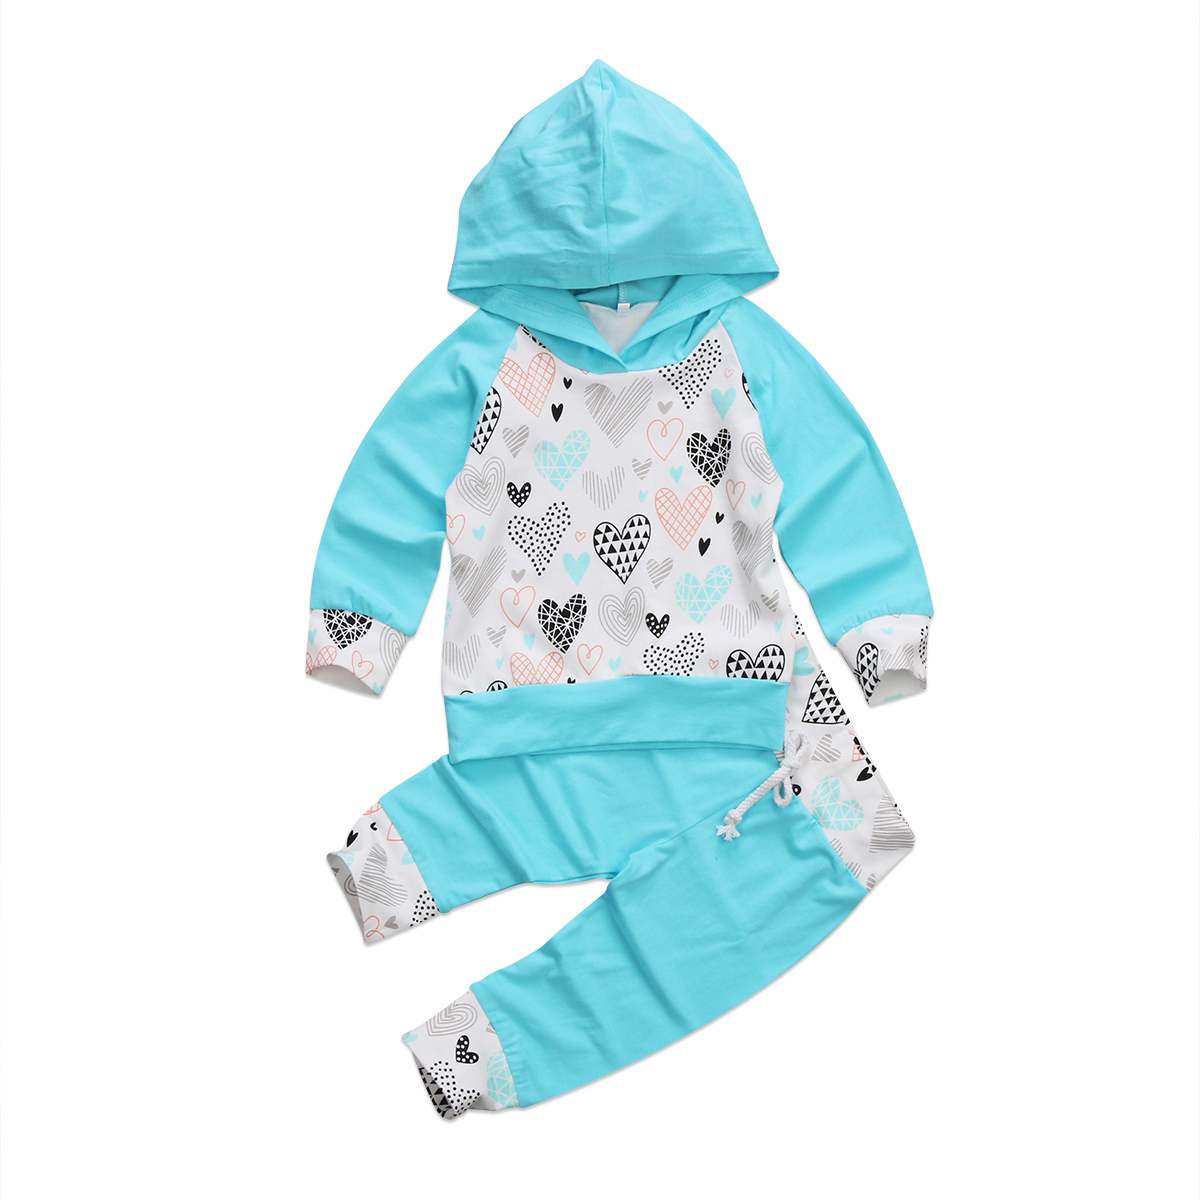 Pudcoco 0-3Y Toddler Baby Boy Girl Clothes Set Hooded Tops Patchwork Heart T-shirt+Long  ...